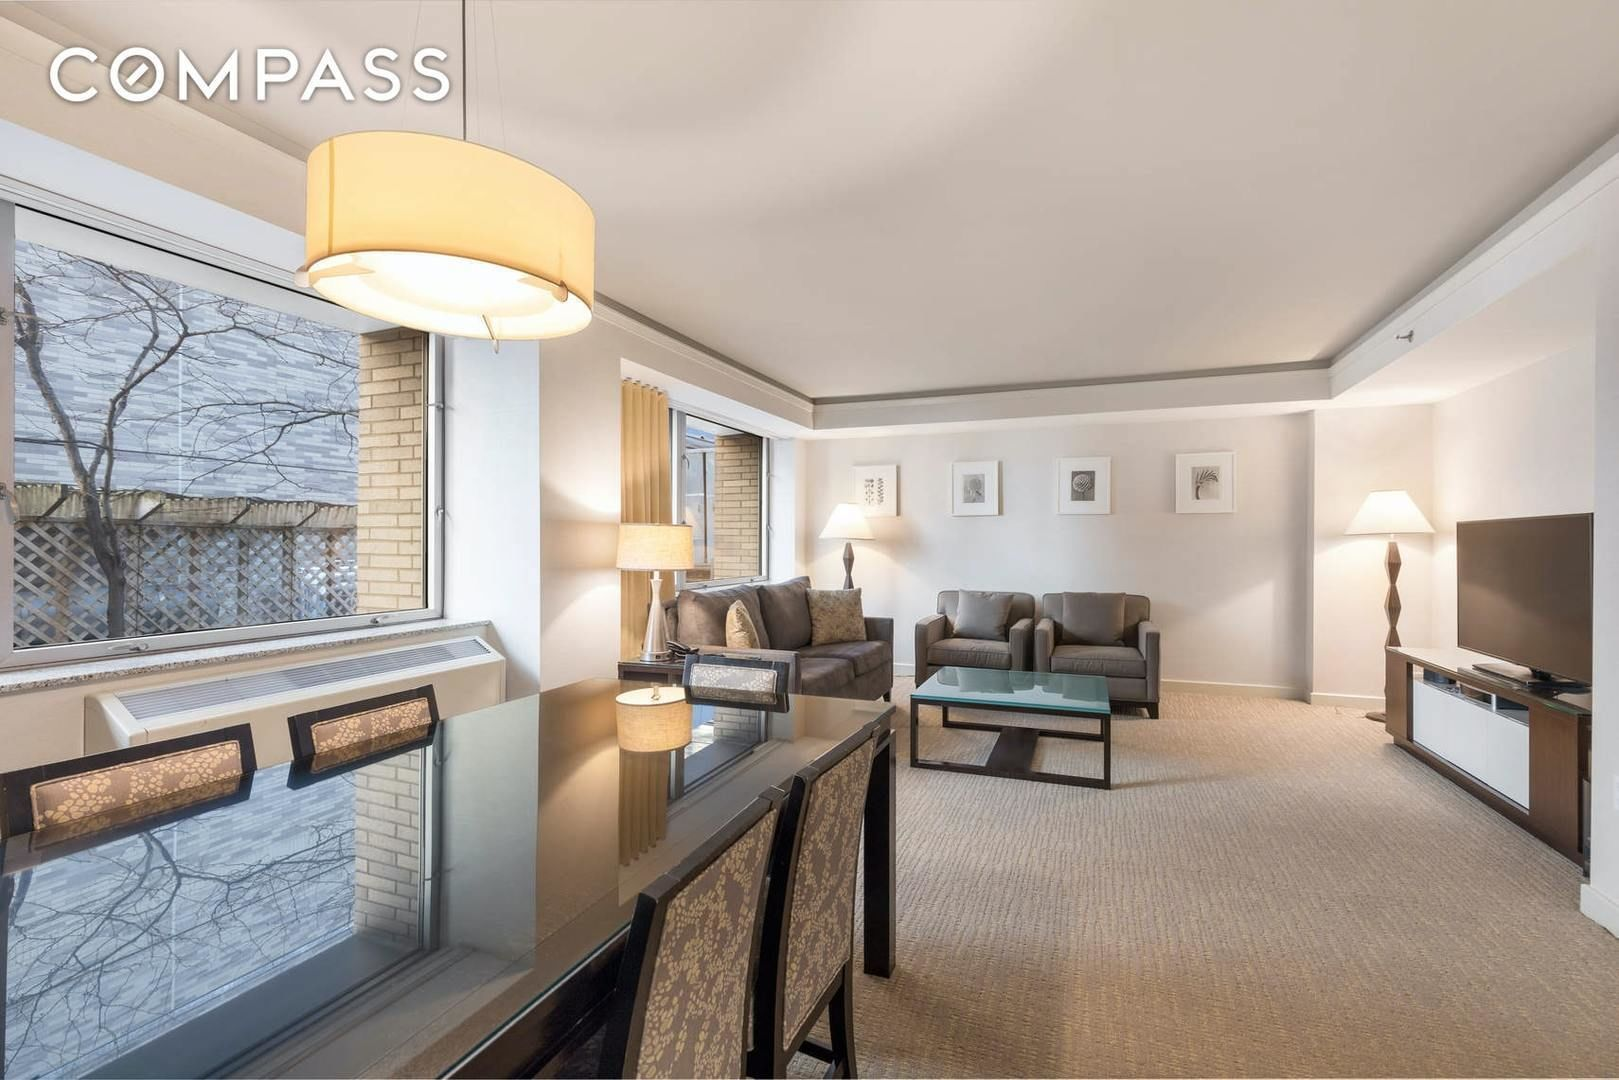 Apartment for sale at 155 West 66th Street, Apt 32627